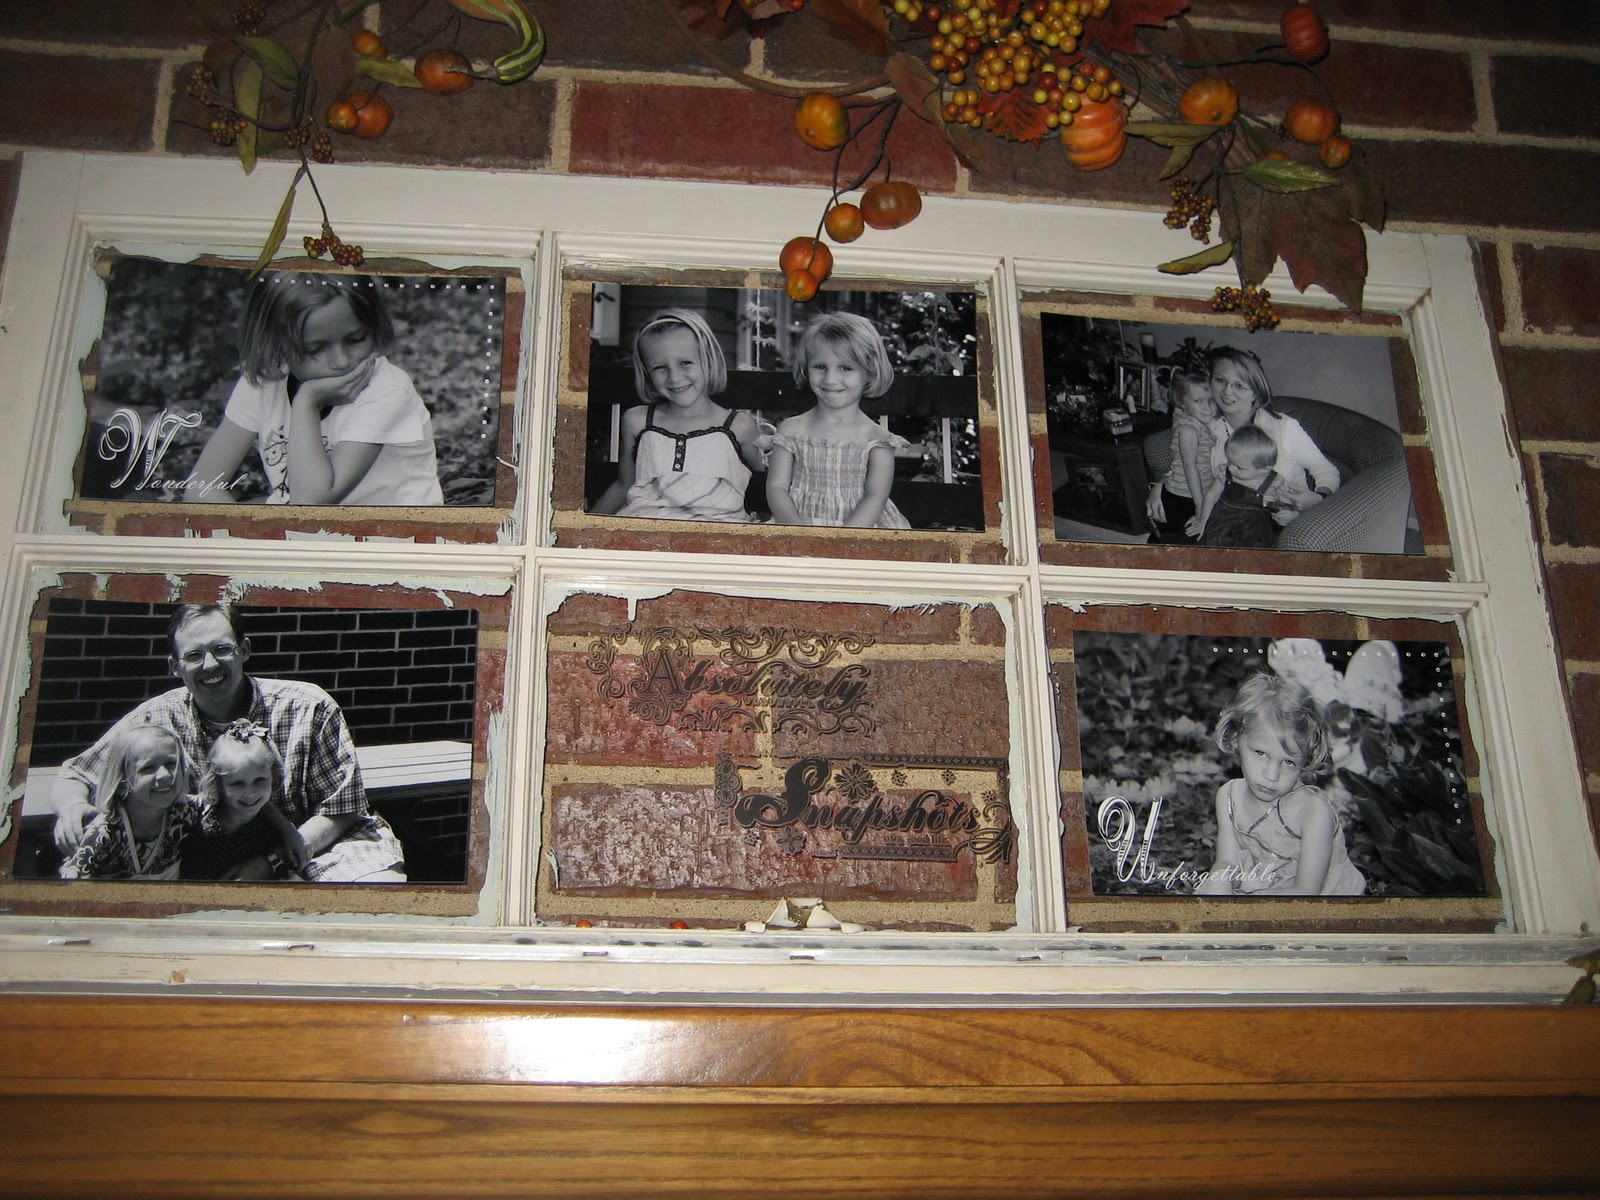 Chasing fireflies fairytales vintage window frame for What to do with old frames